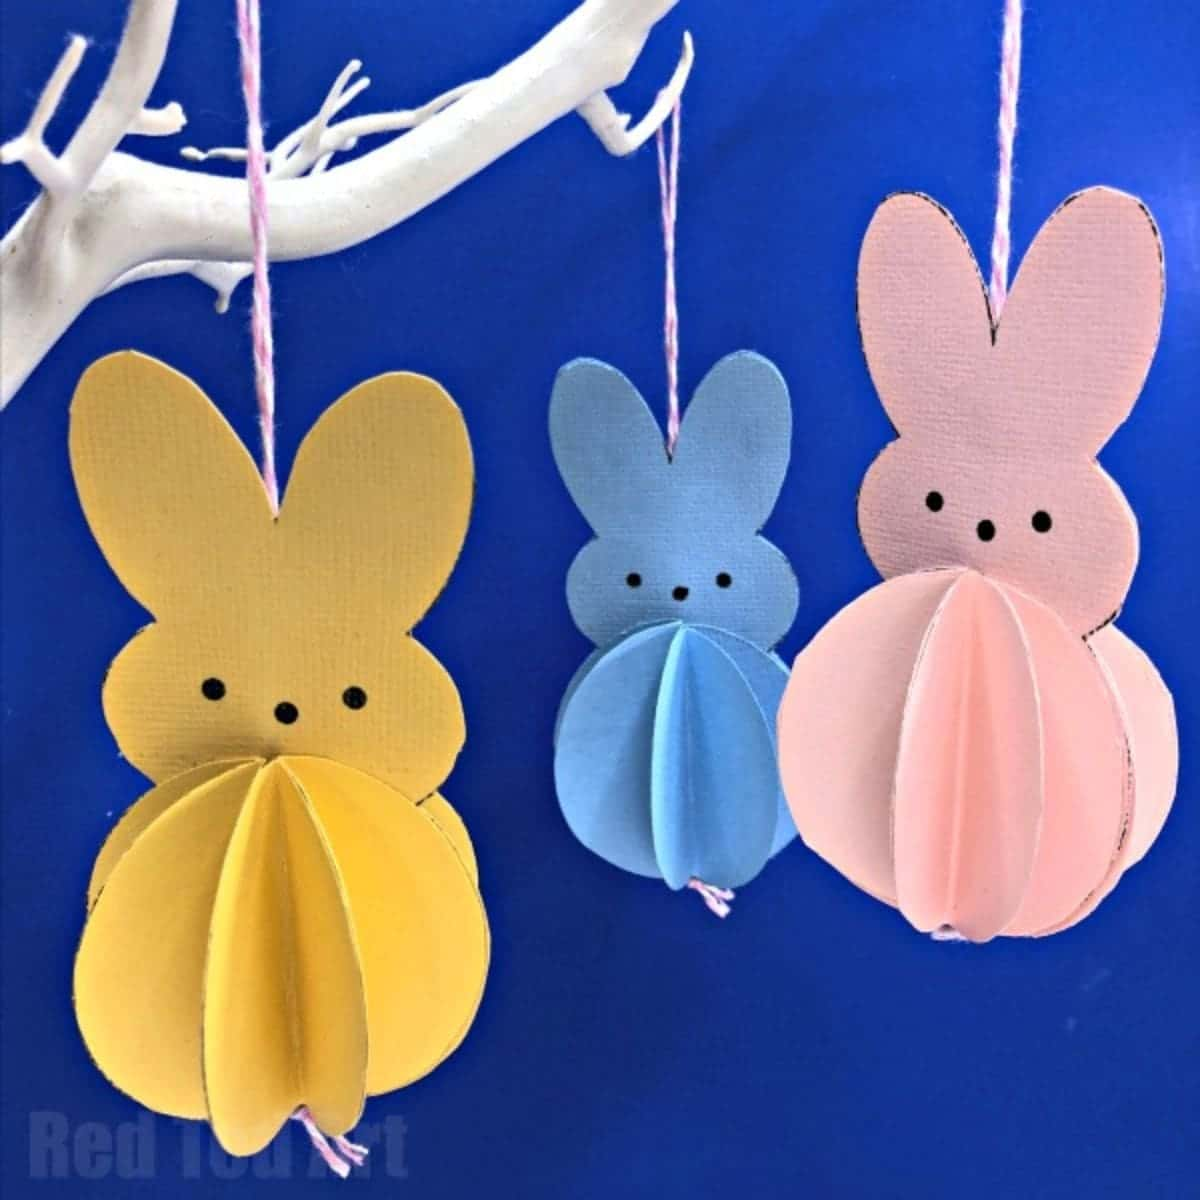 3 paper bunny shapes in orange, blue and pink hang from a white branch against a blue background